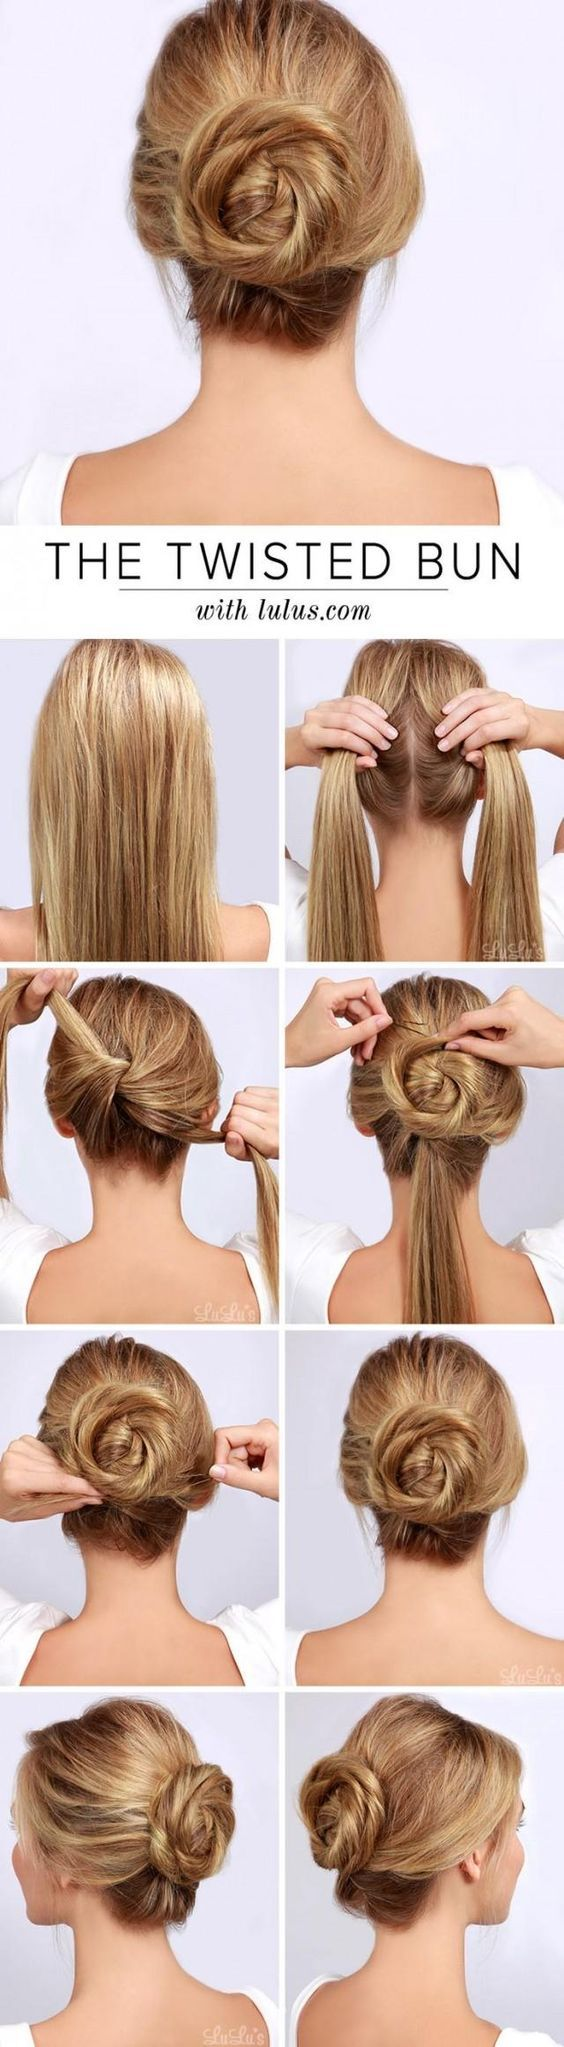 Romantic and girlish hairstyles for a date peinados pinterest